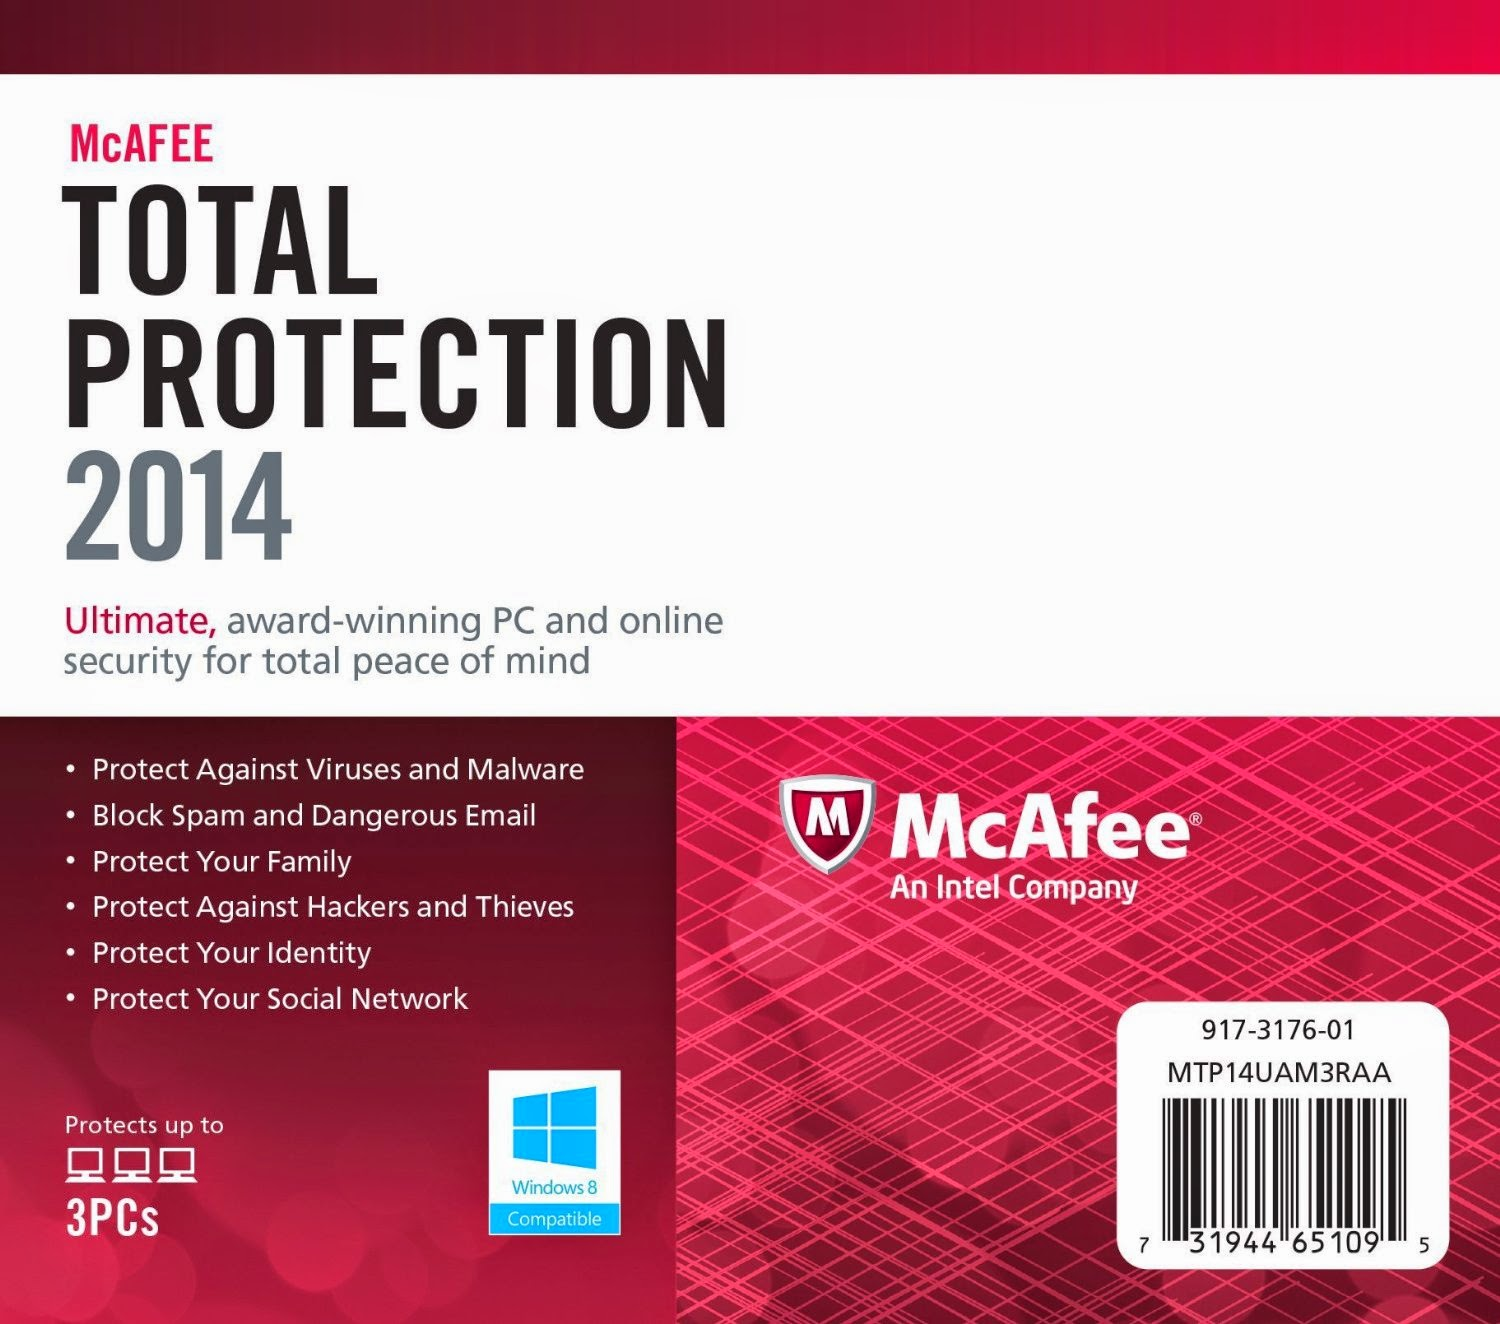 How to Uninstall McAfee Total Protection